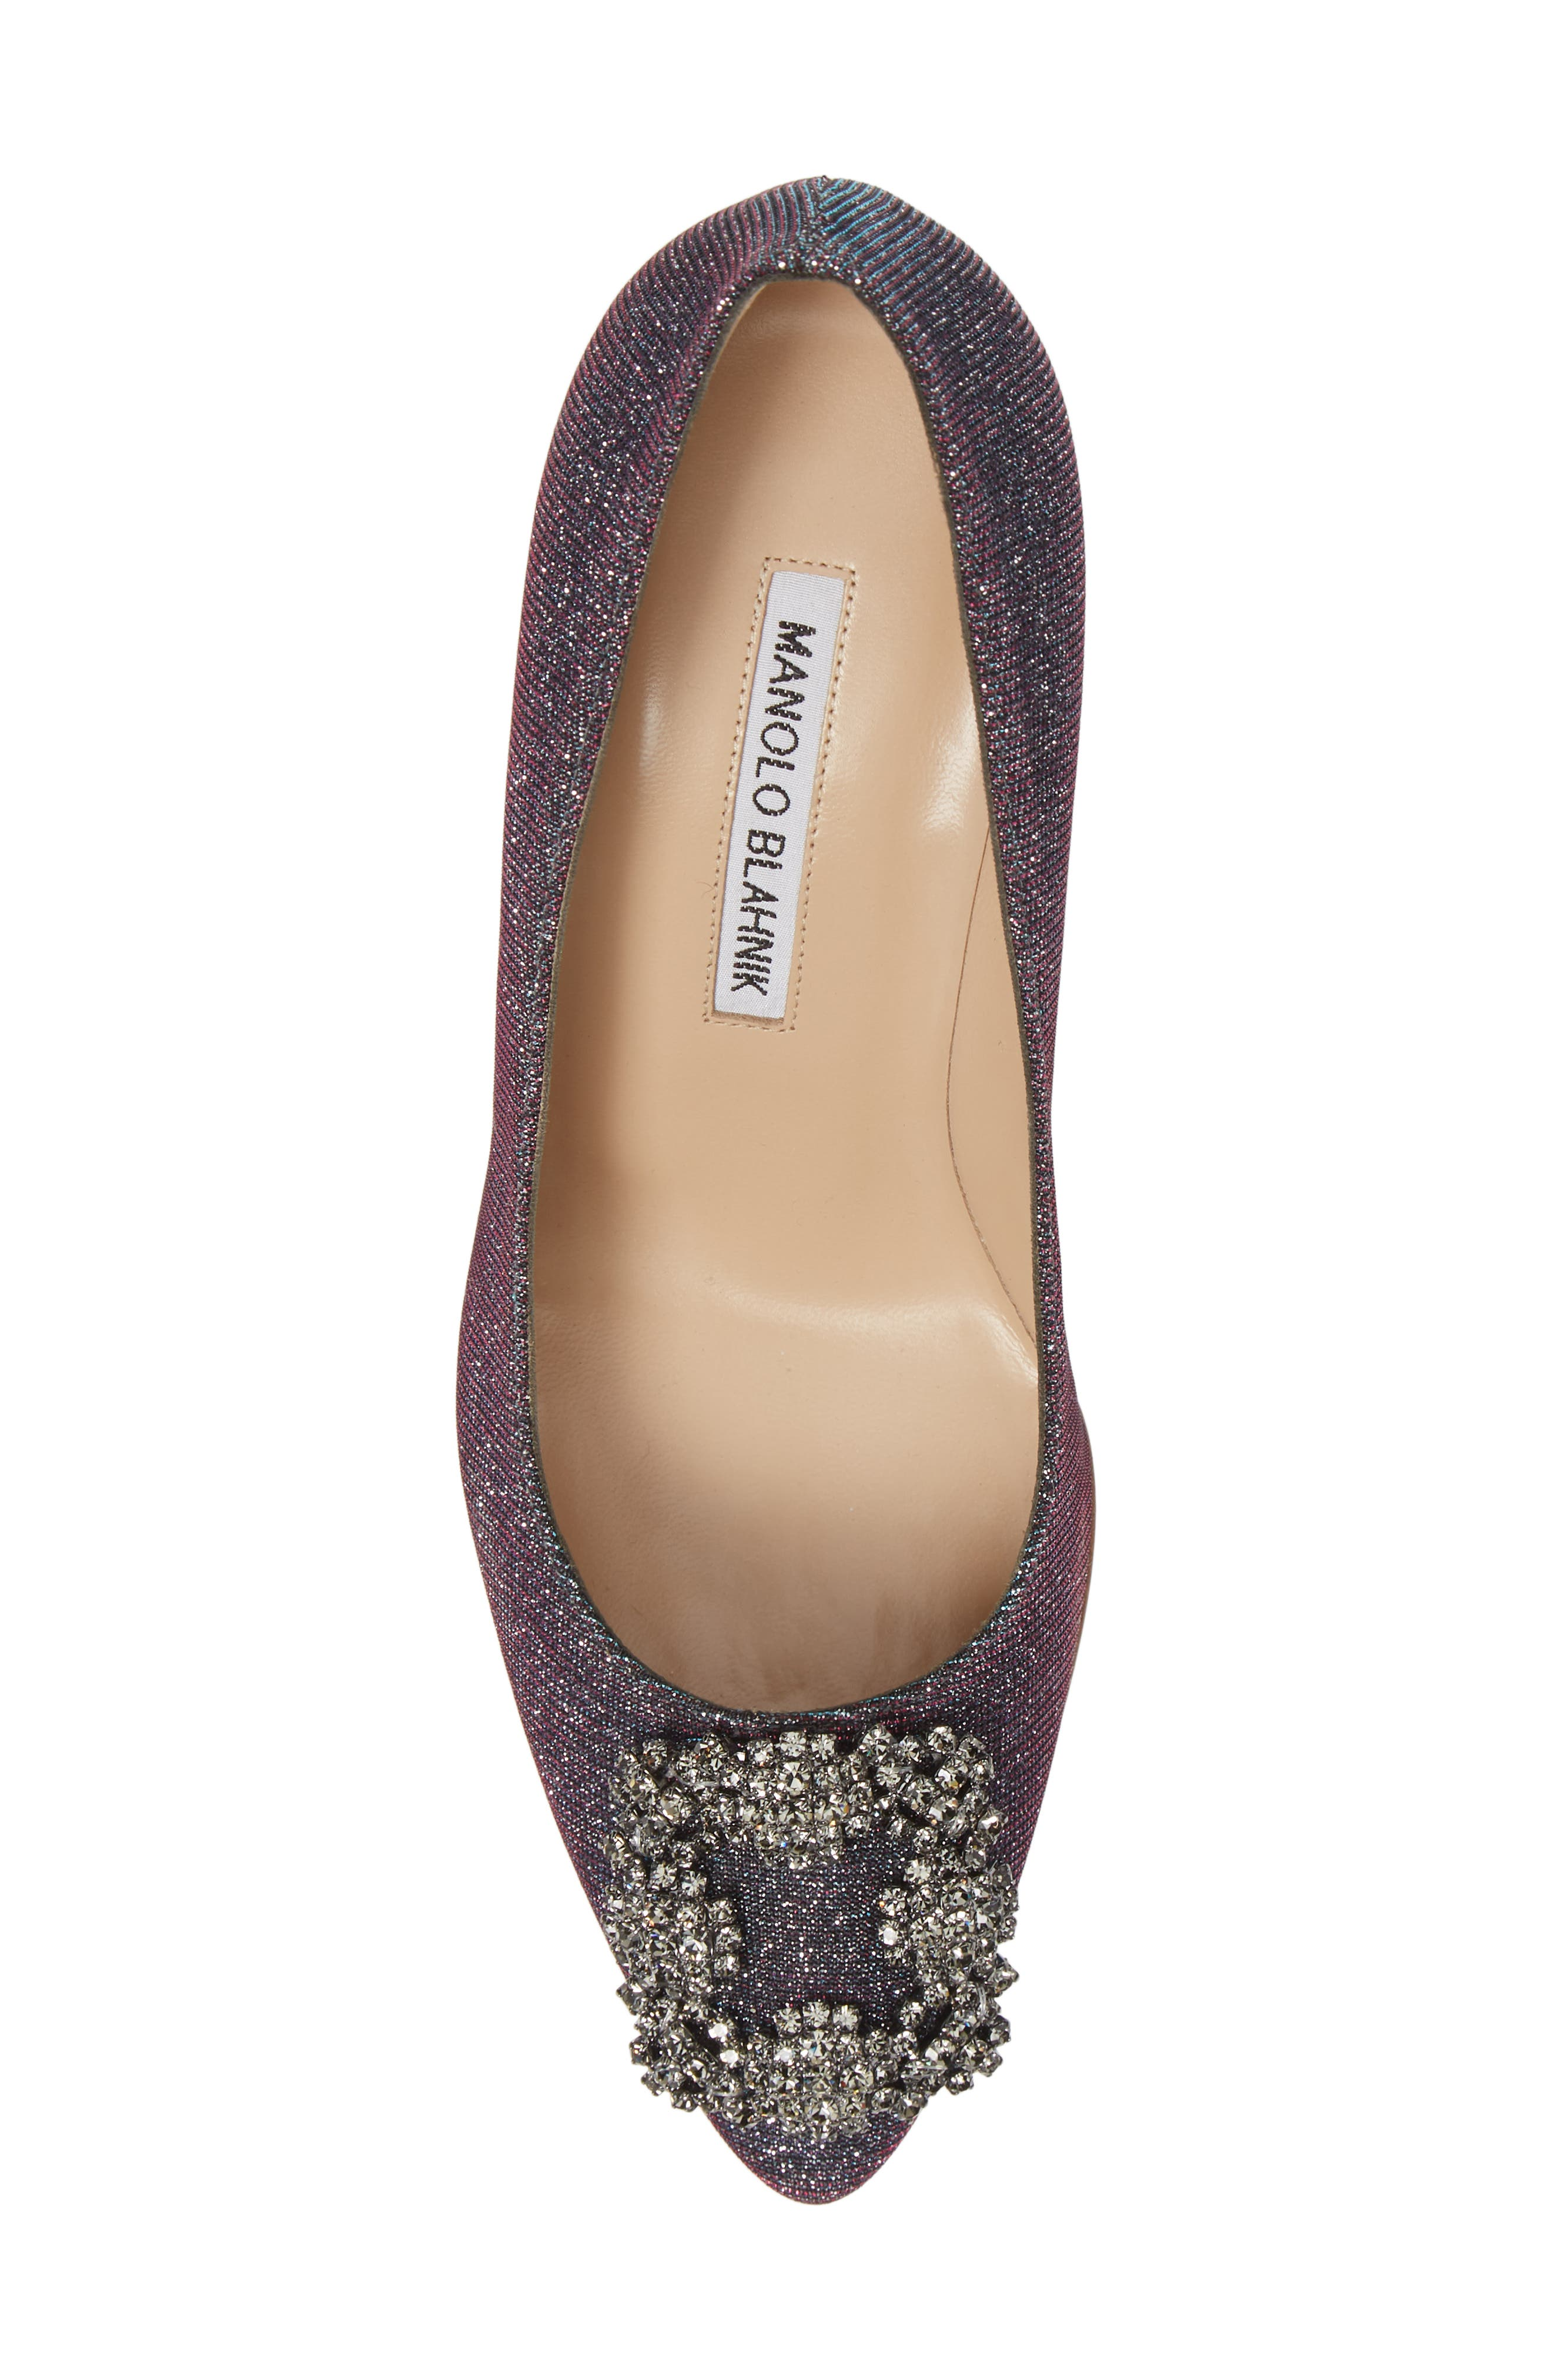 MANOLO BLAHNIK, Hangisi Pump, Alternate thumbnail 5, color, MIDNIGHT BLUE